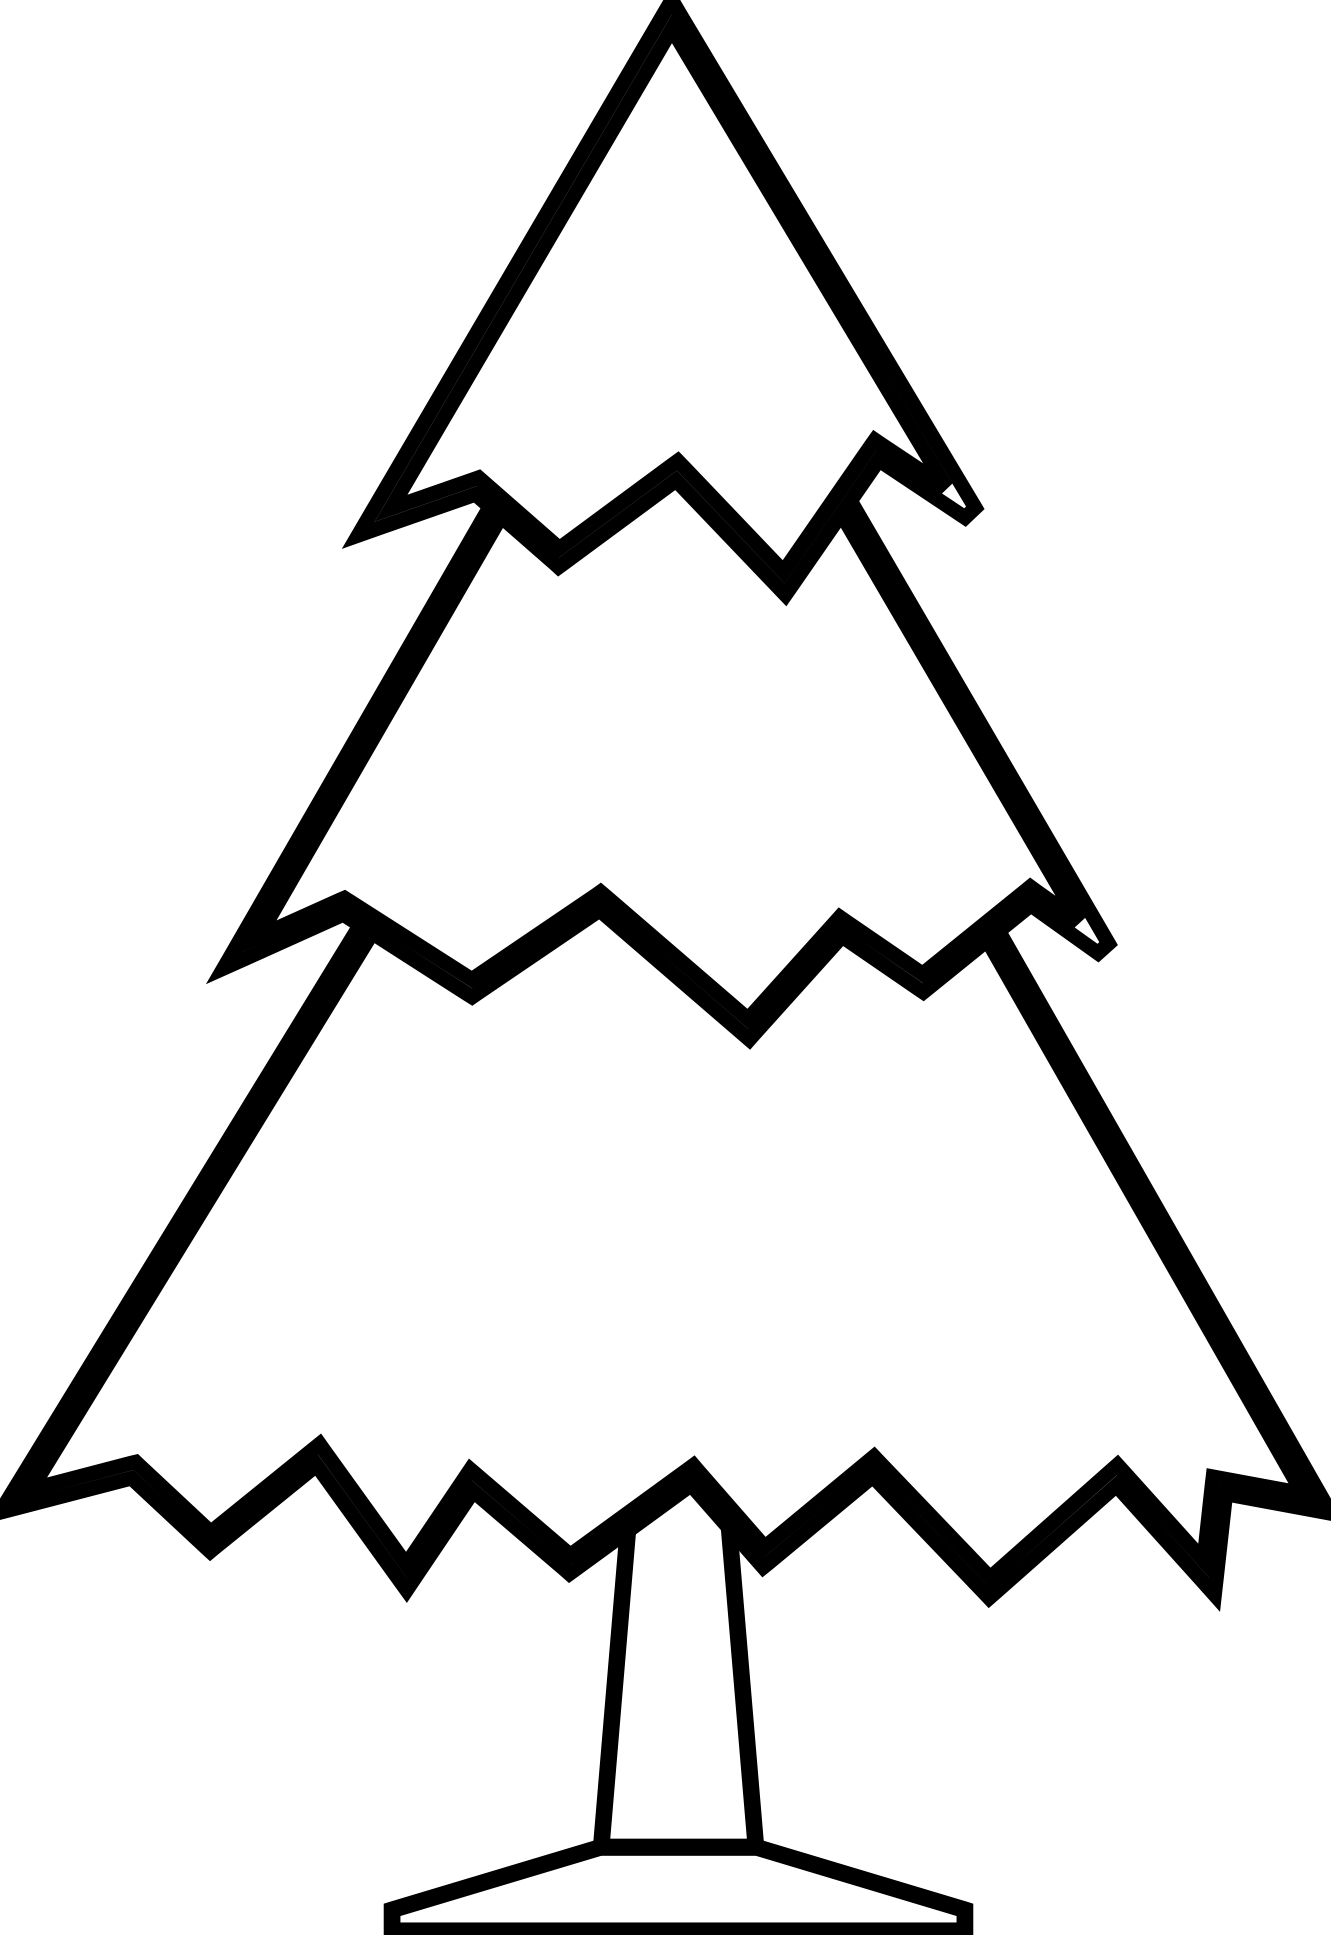 Christmas Tree Images Clip Art - ClipArt Best